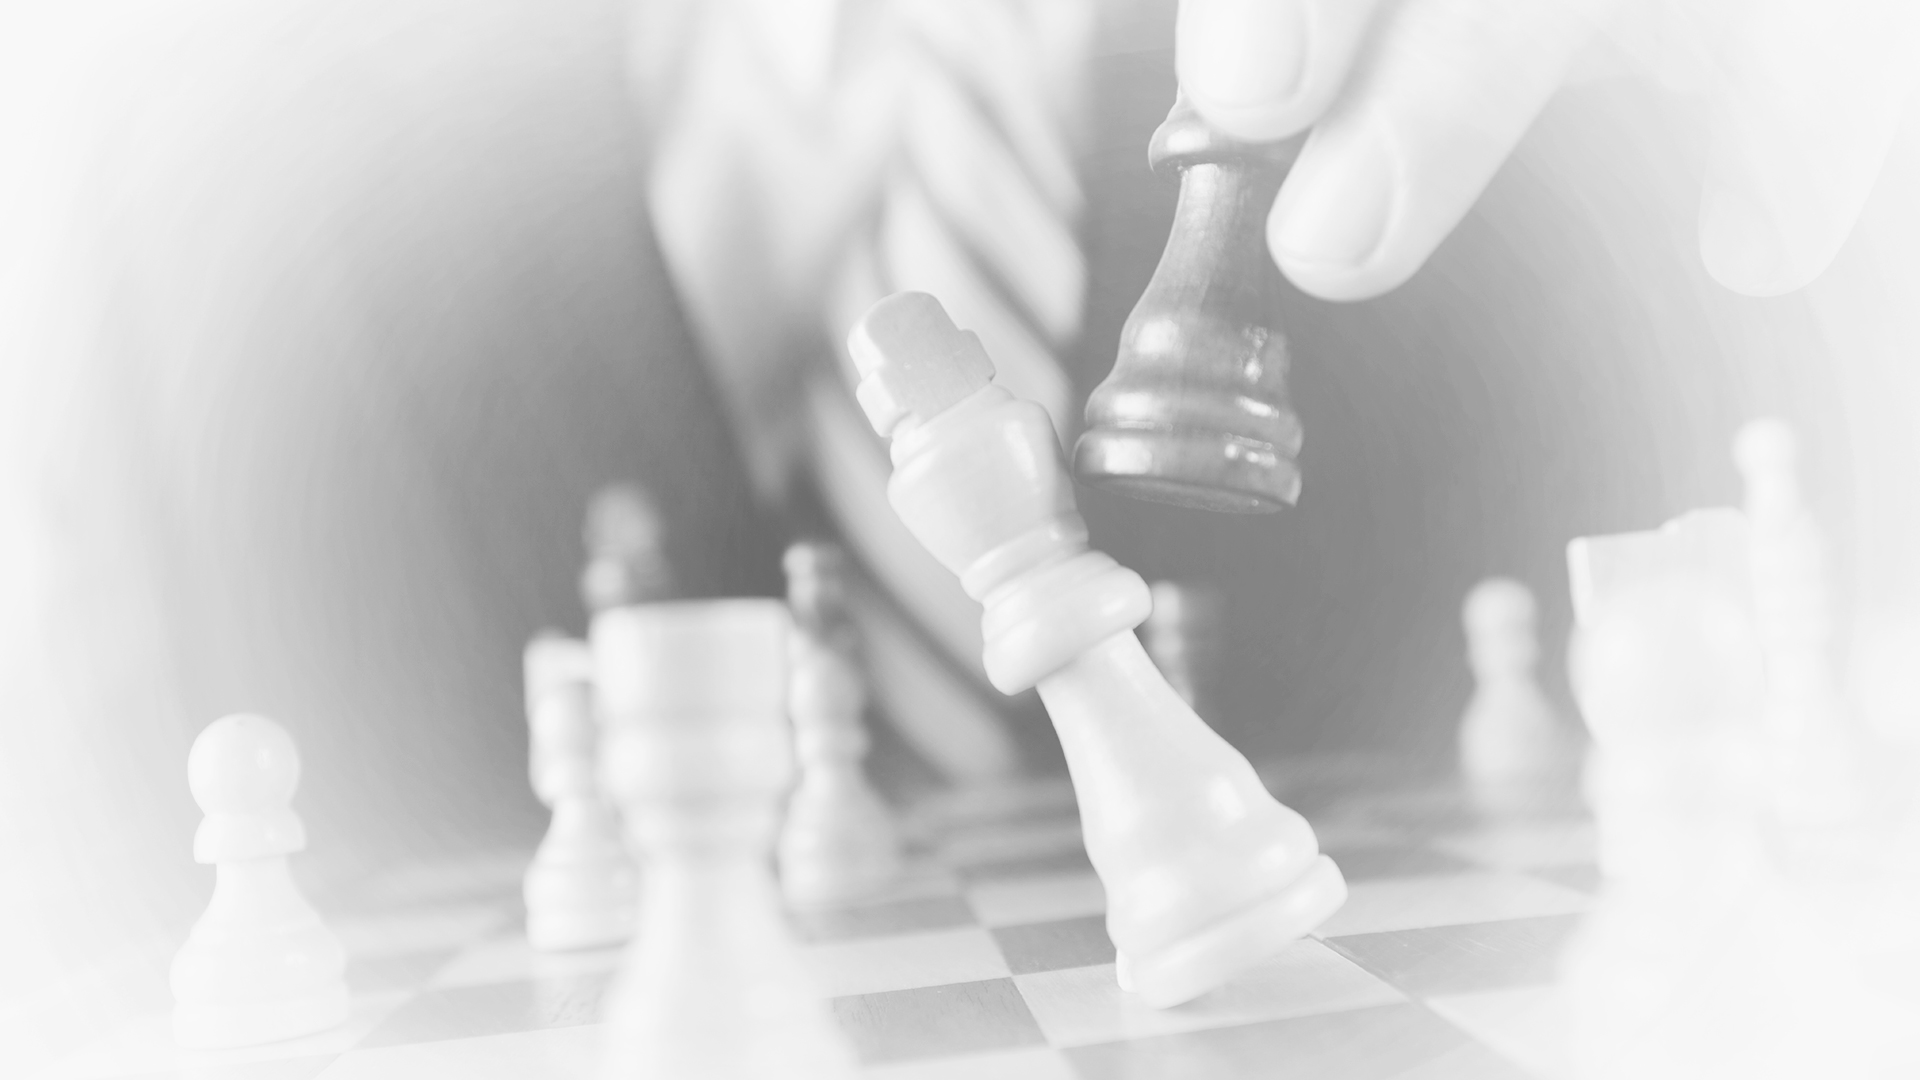 Knocking out the king in chess - AiDA Technologies